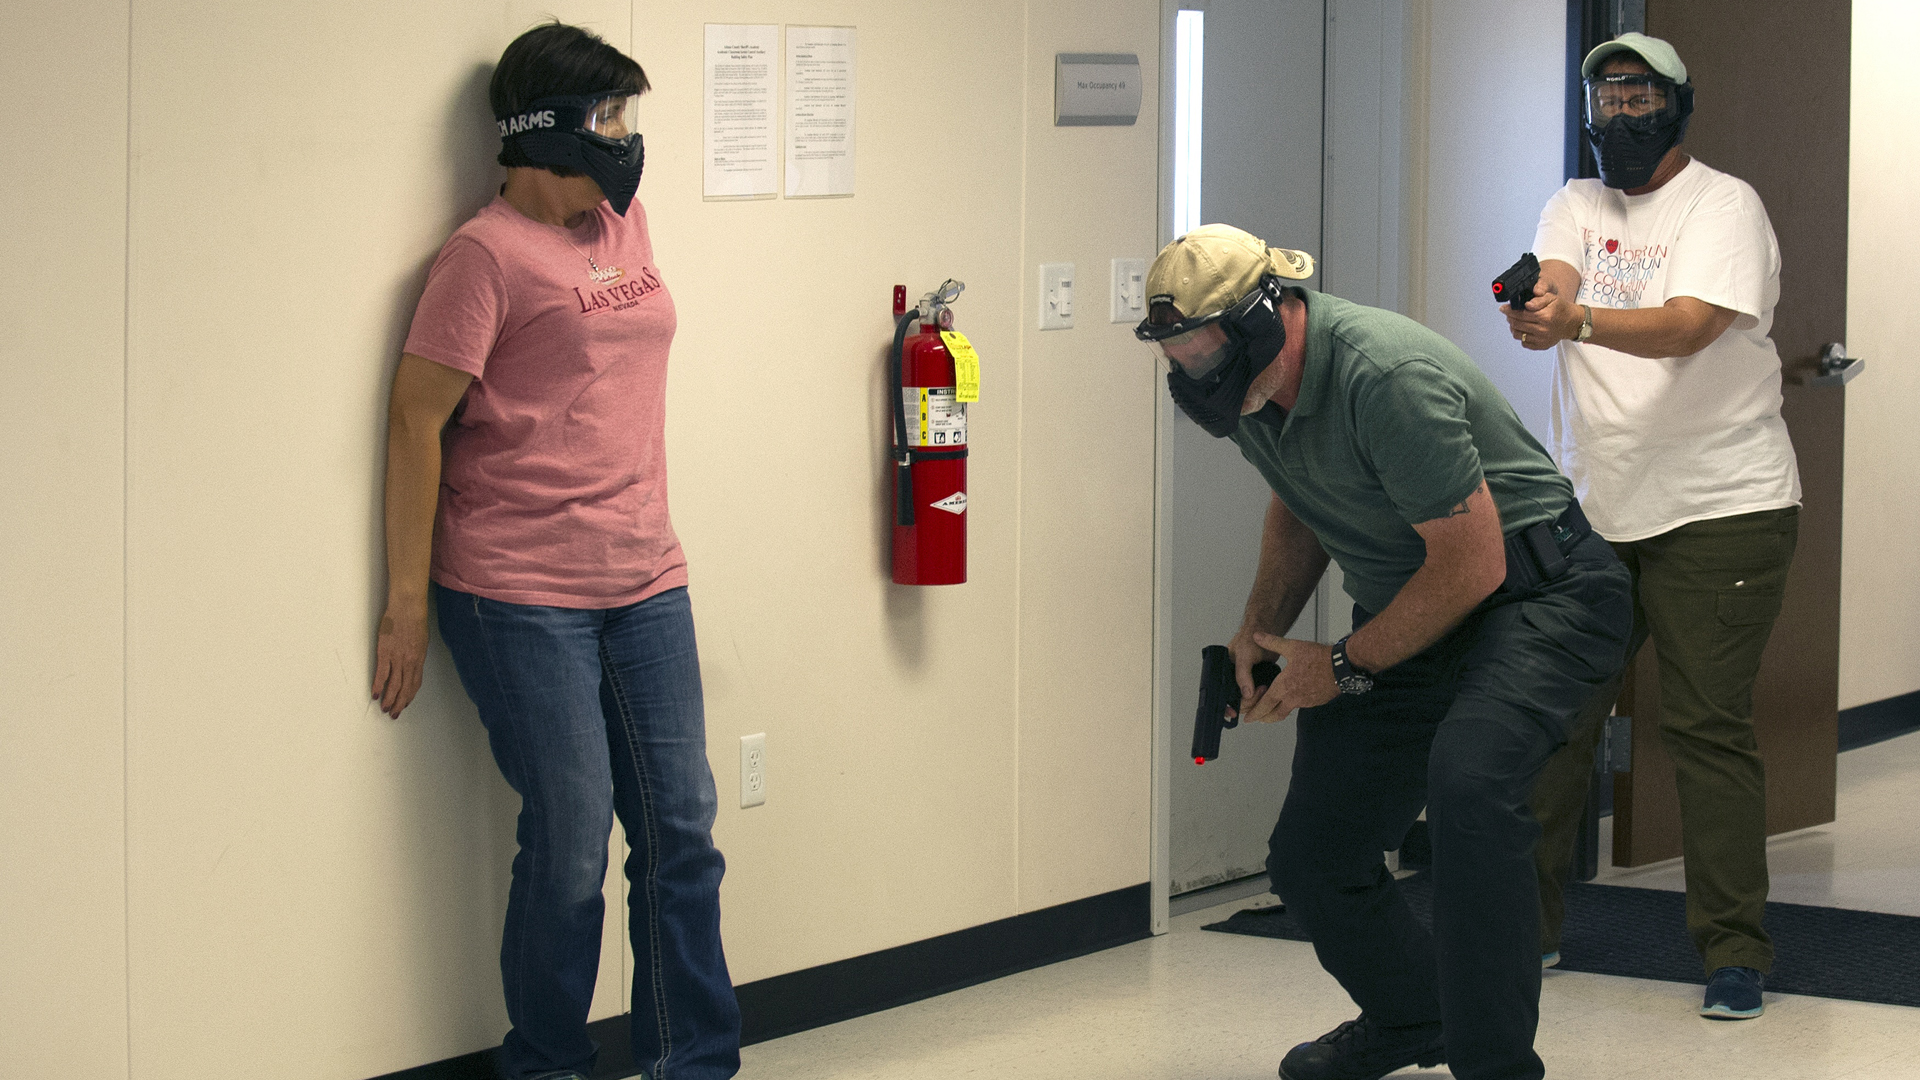 School teachers and administrators participate in an Airsoft mock active shooter drill in Colorado during a three day firearms course in Commerce City, Colorado on June 28, 2018. (Credit: JASON CONNOLLY/AFP/Getty Images)